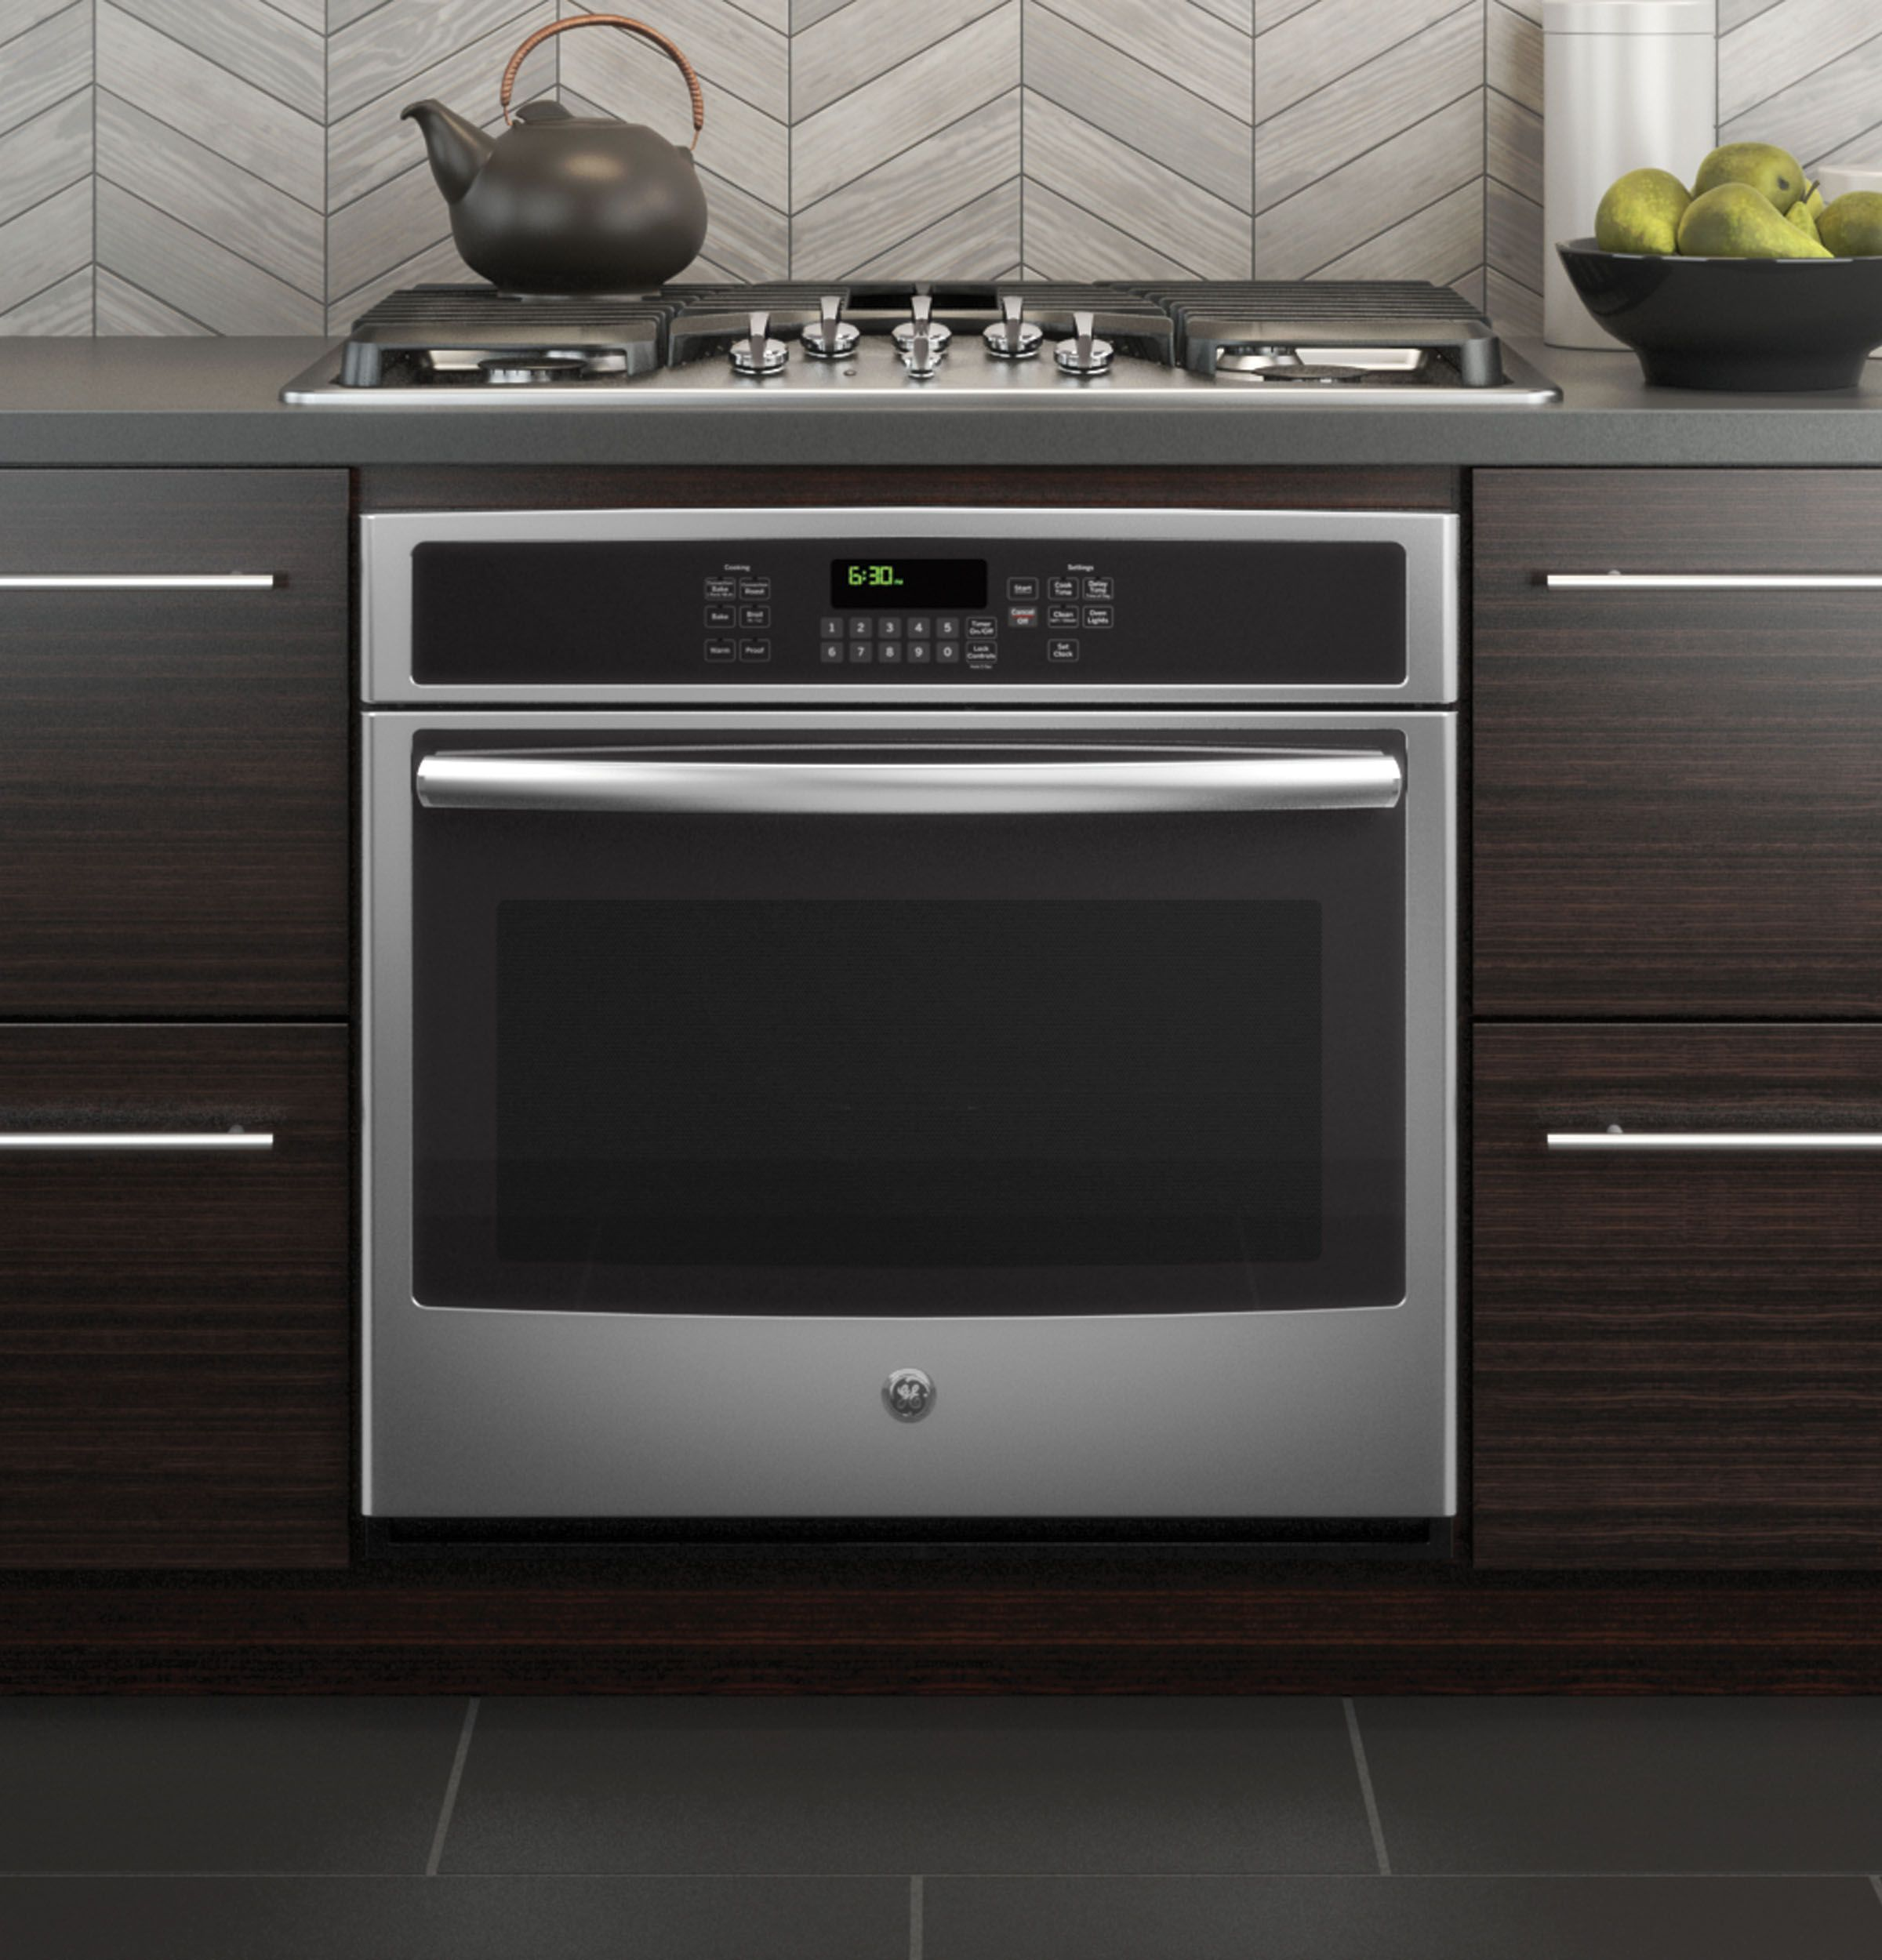 Ge 30 Built In Single Convection Wall Oven Jt5000sfss Single Electric Wall Oven Electric Wall Oven Convection Wall Oven